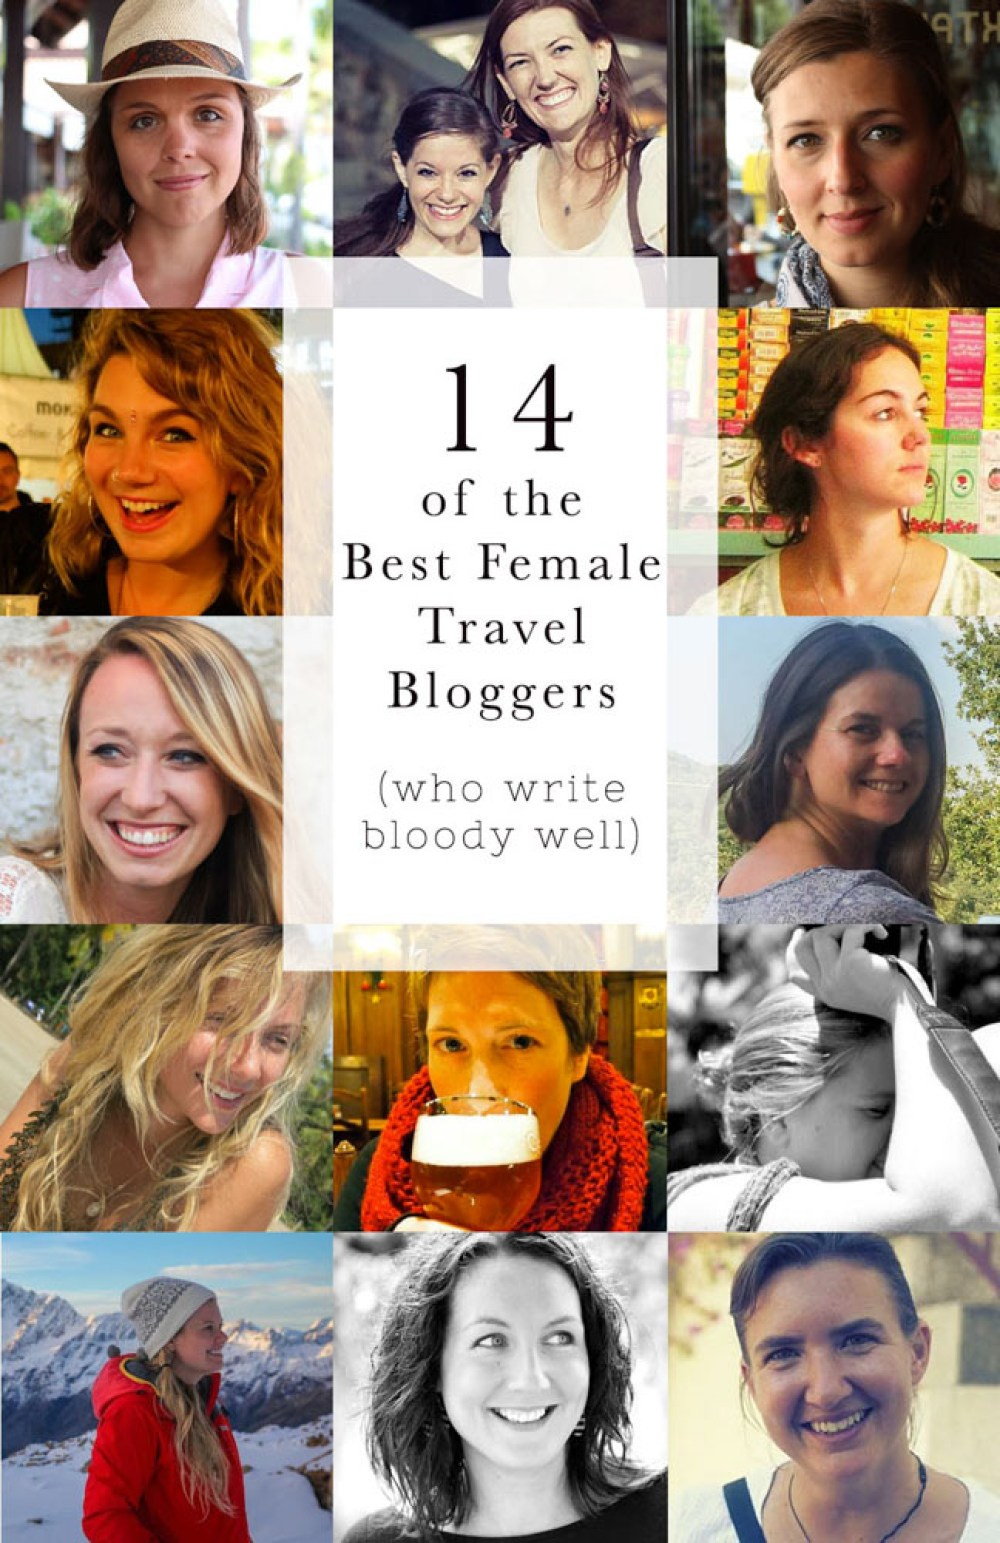 The Best Female Travel Bloggers (who write bloody well)